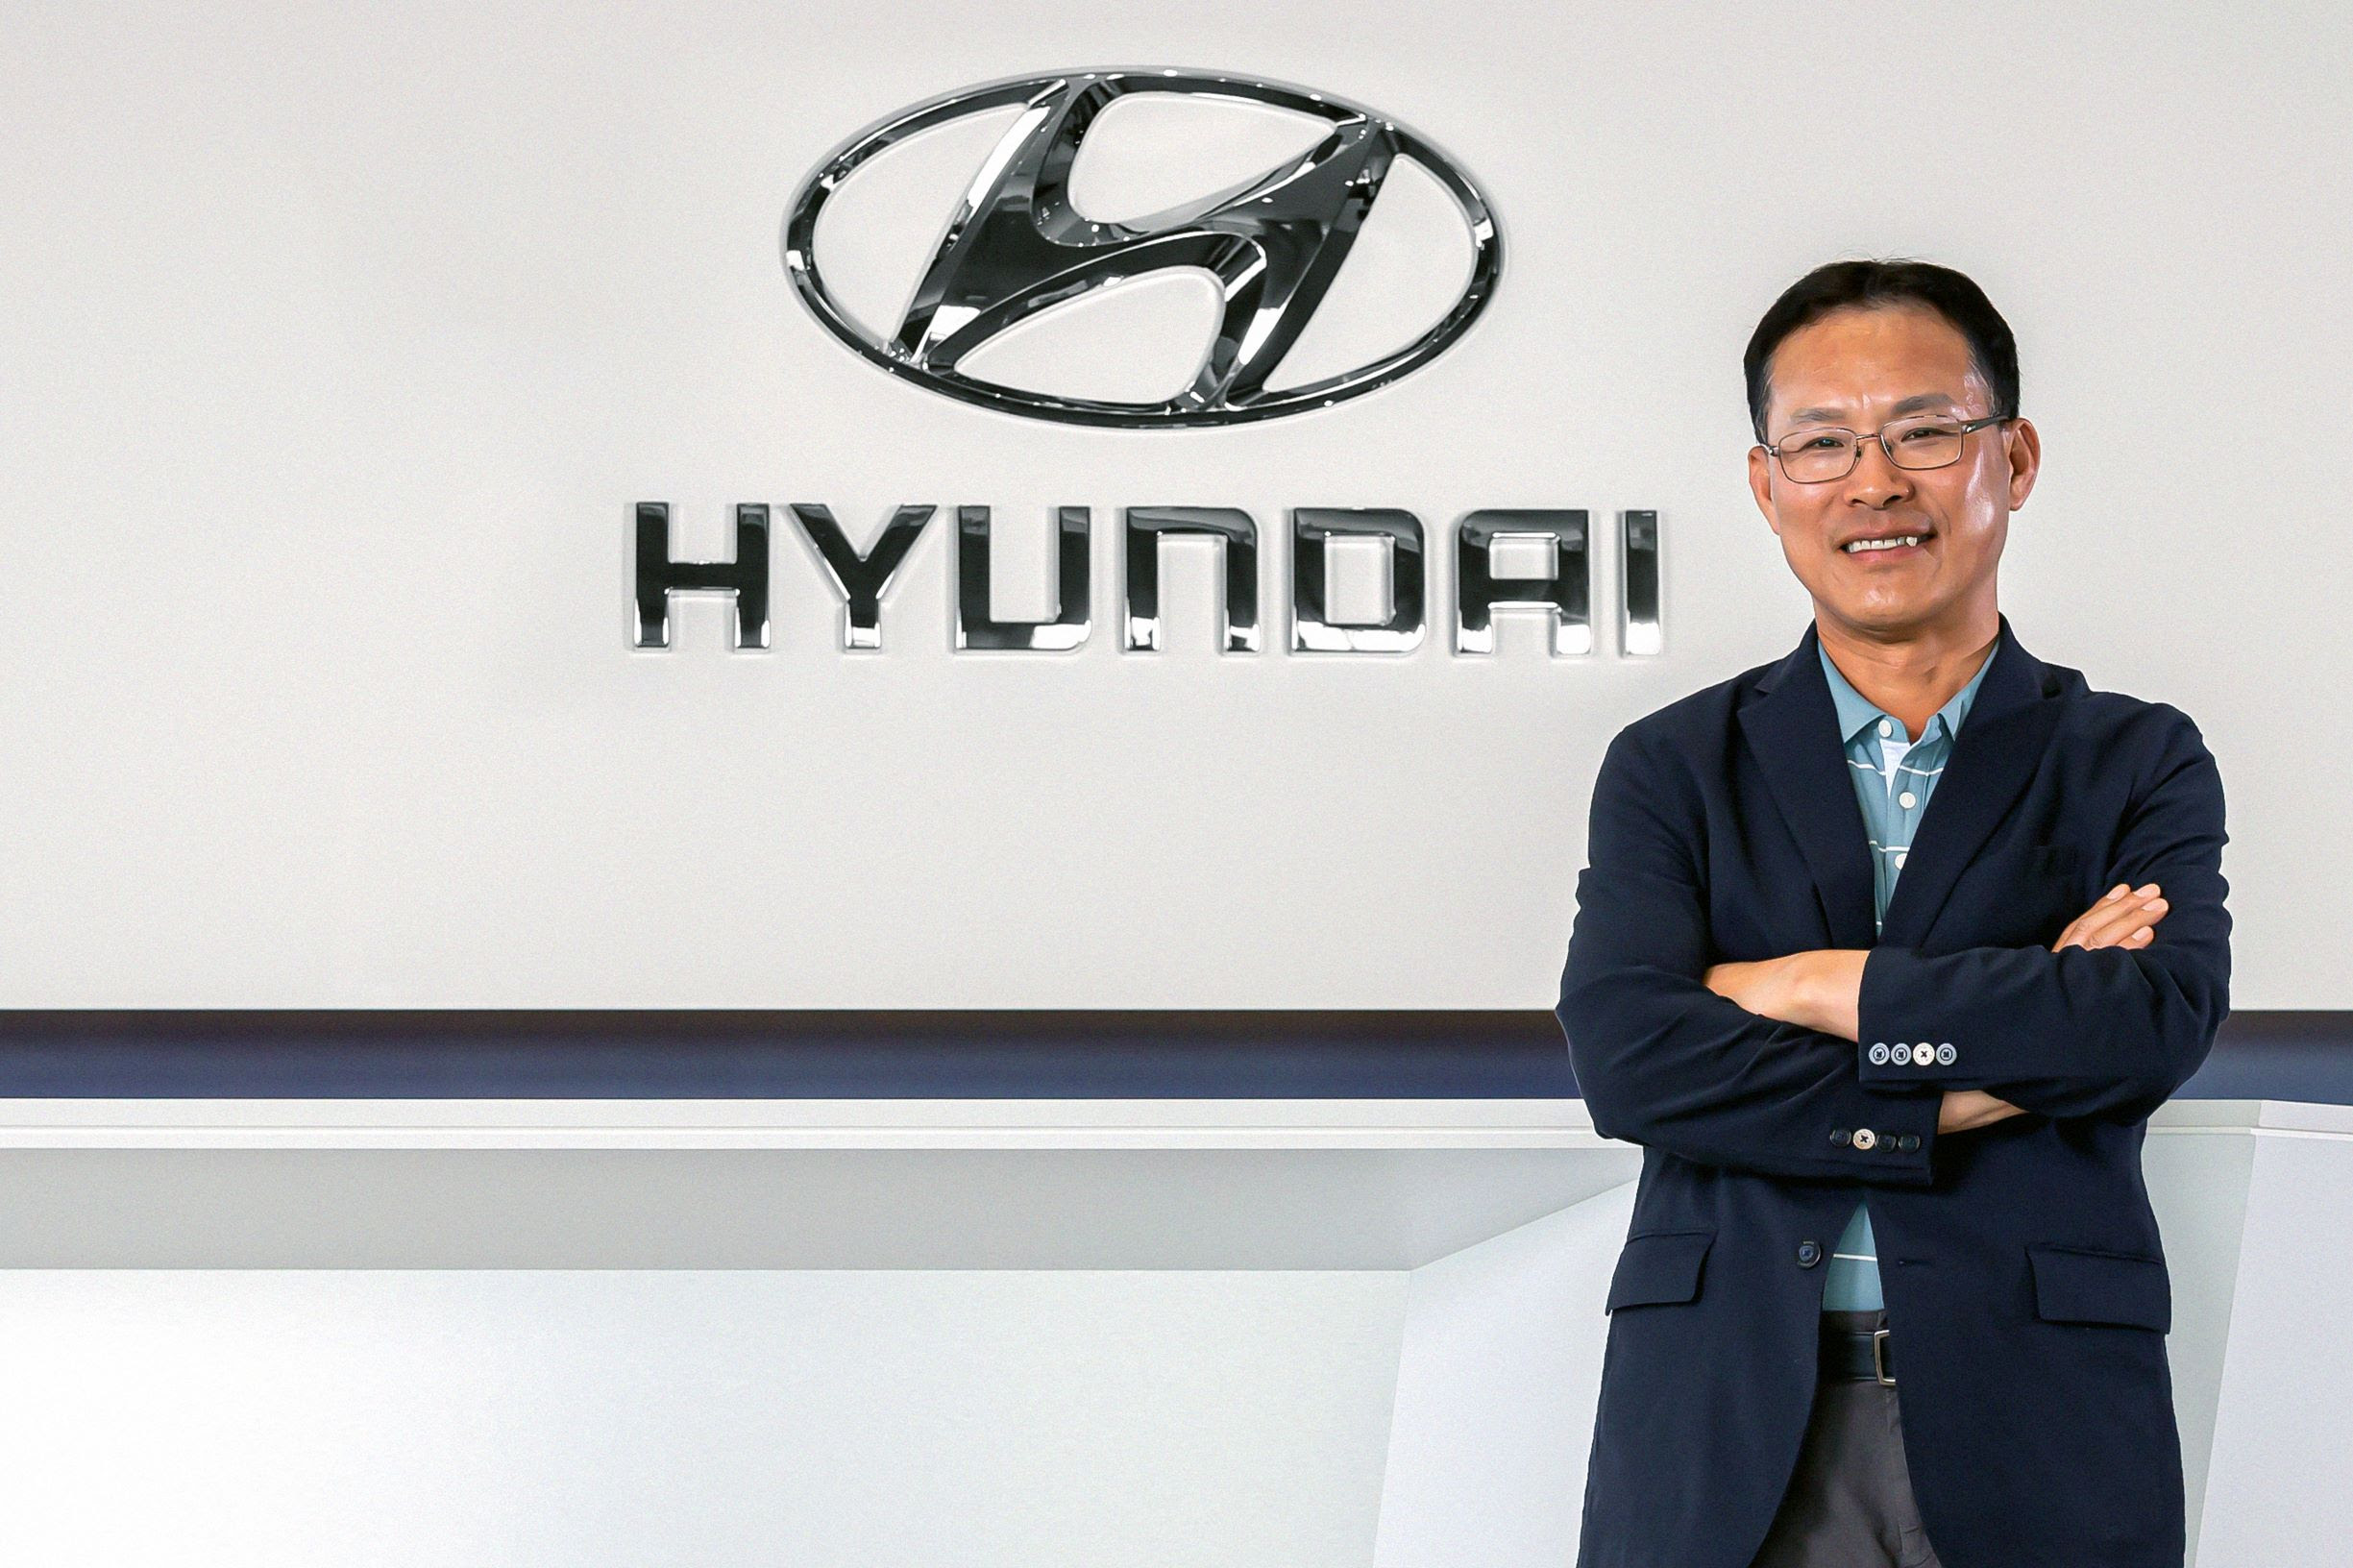 Hyundai is thinking smartly about the future of travel for consumers